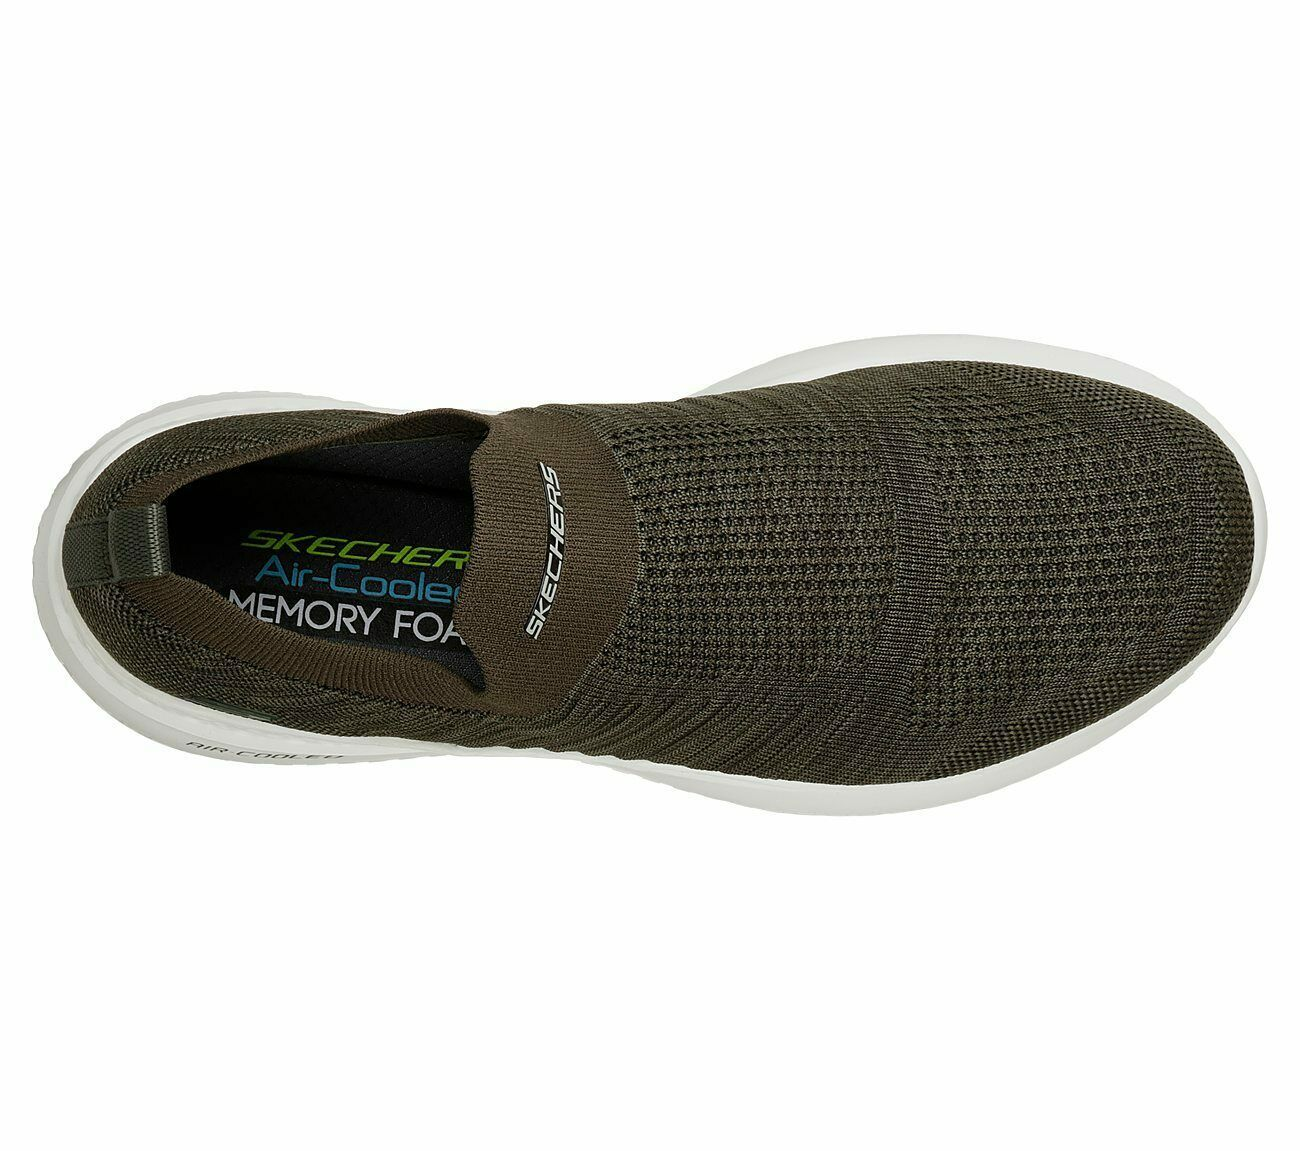 Skechers Olive shoes Men's Memory Foam Comfort Slip On Casual Mesh Comfort 51909 image 5